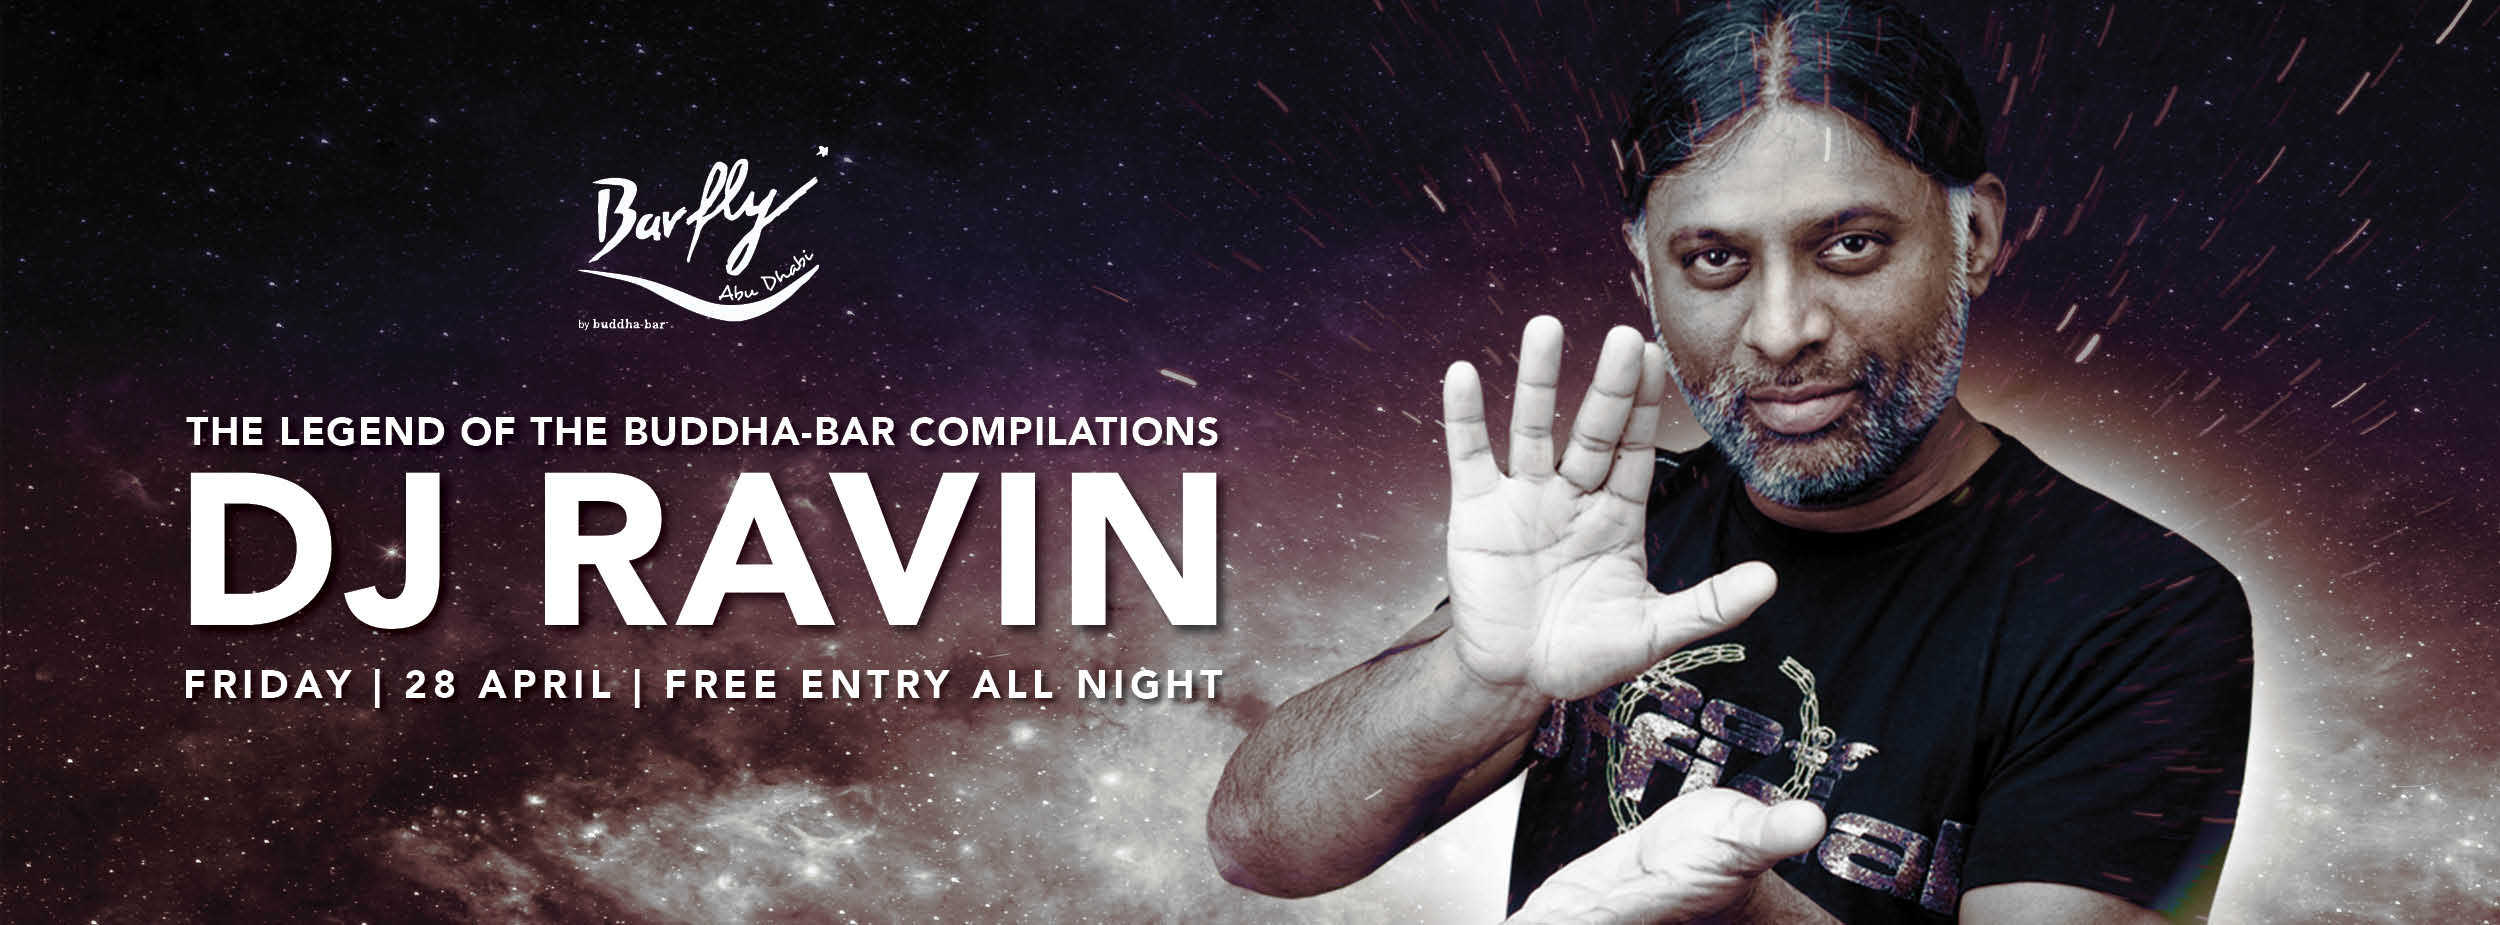 DJ Ravin - The Legend of Buddha-bar Compilations